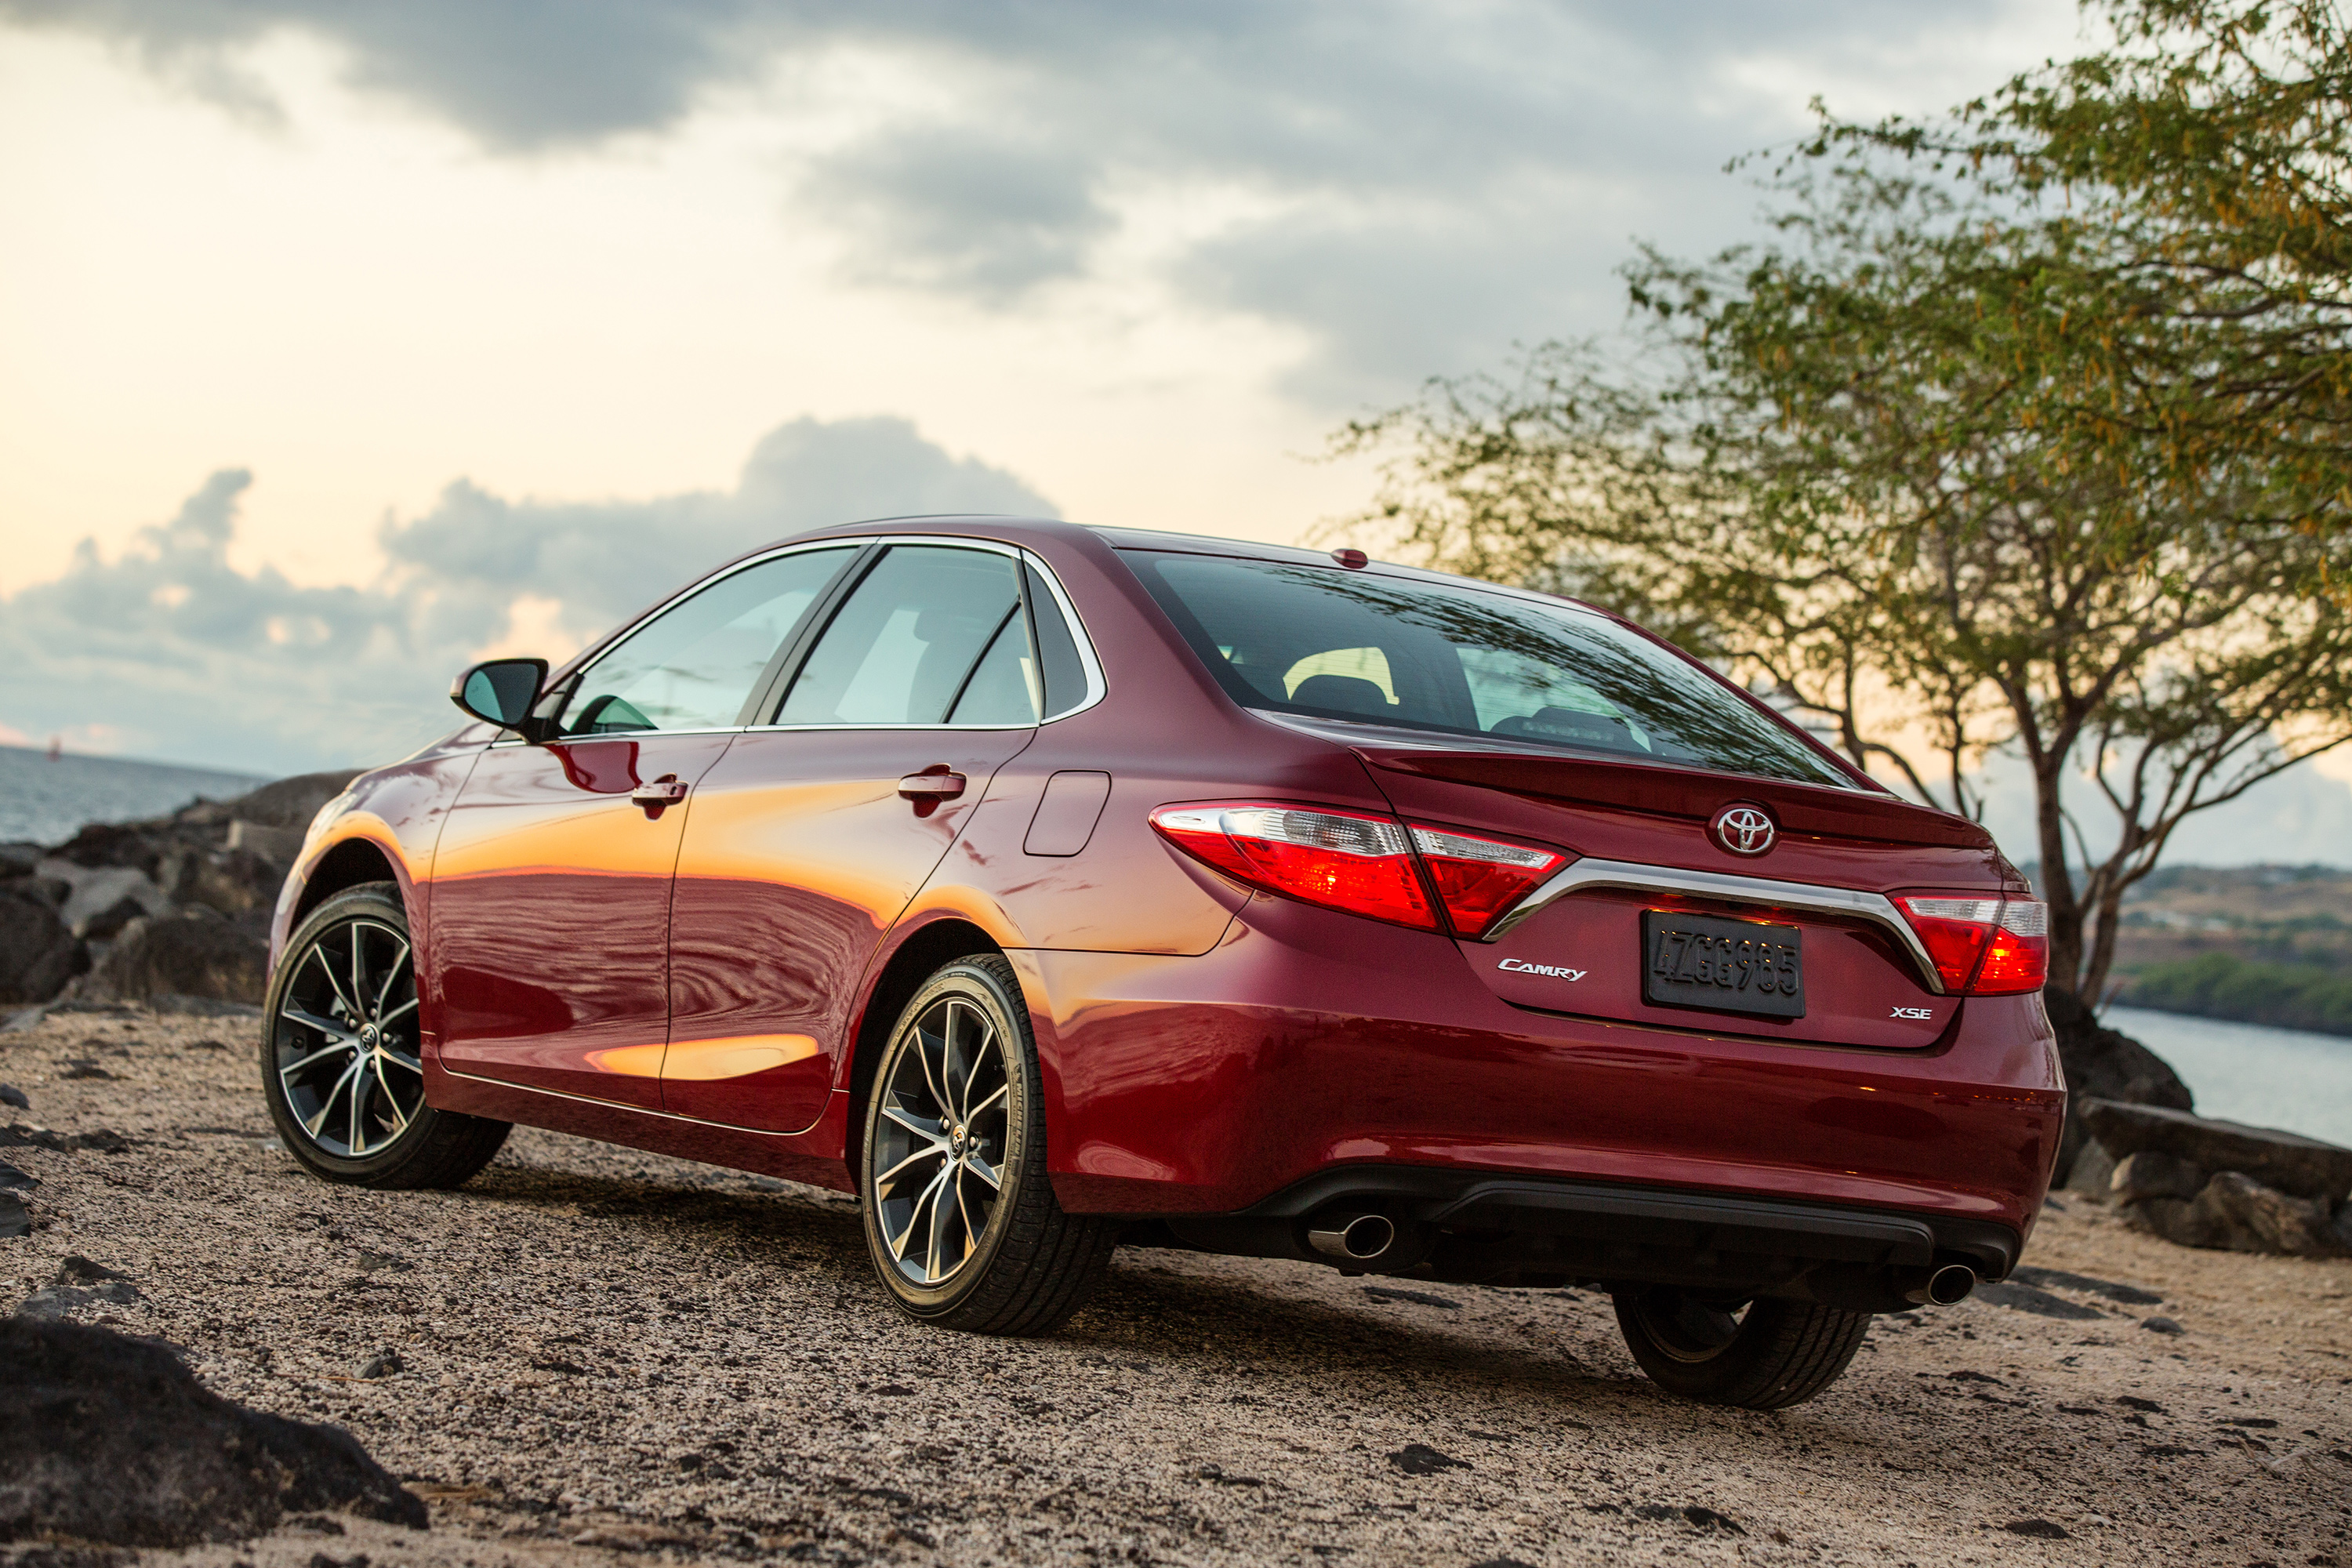 The Toyota Camry will likely come in again as the country's best-selling car of the year SUBMITTED PHOTO/Courtesy of Toyota.